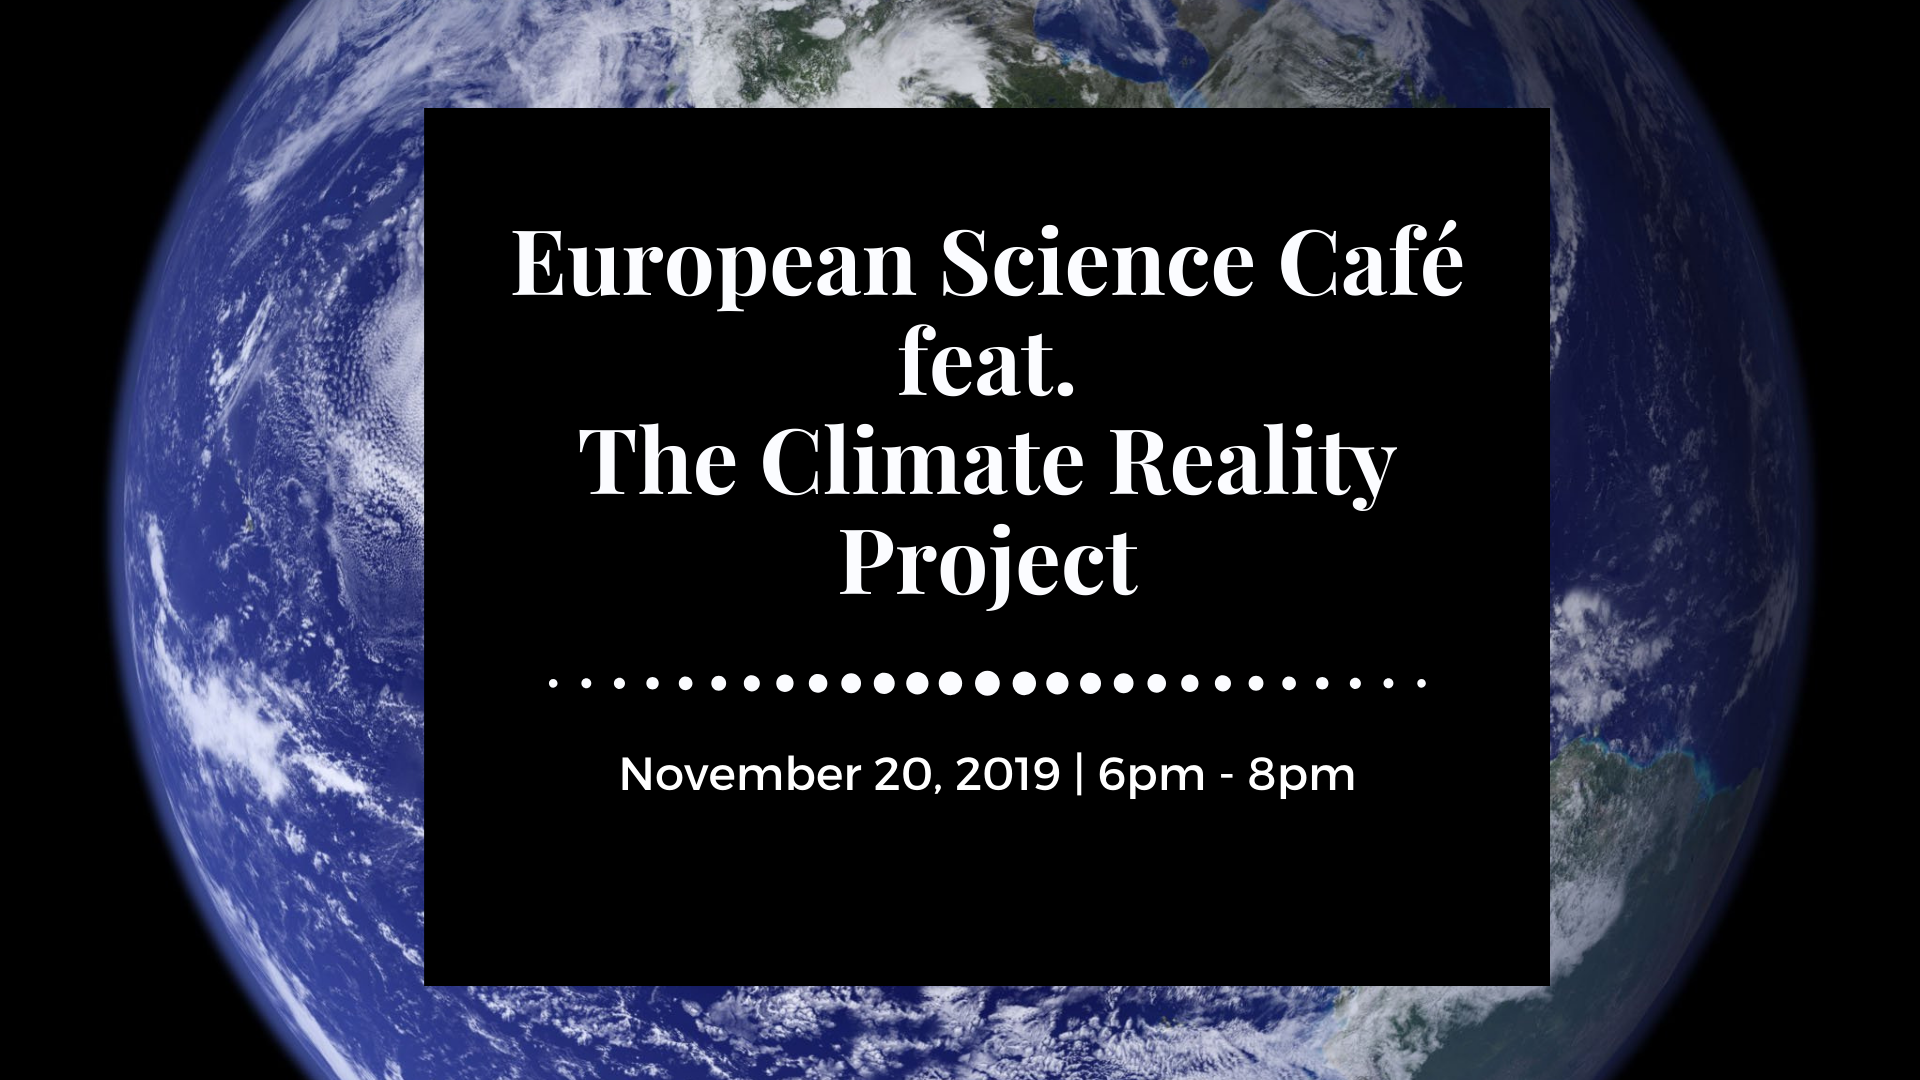 European Science Café ft. The Climate Reality Project